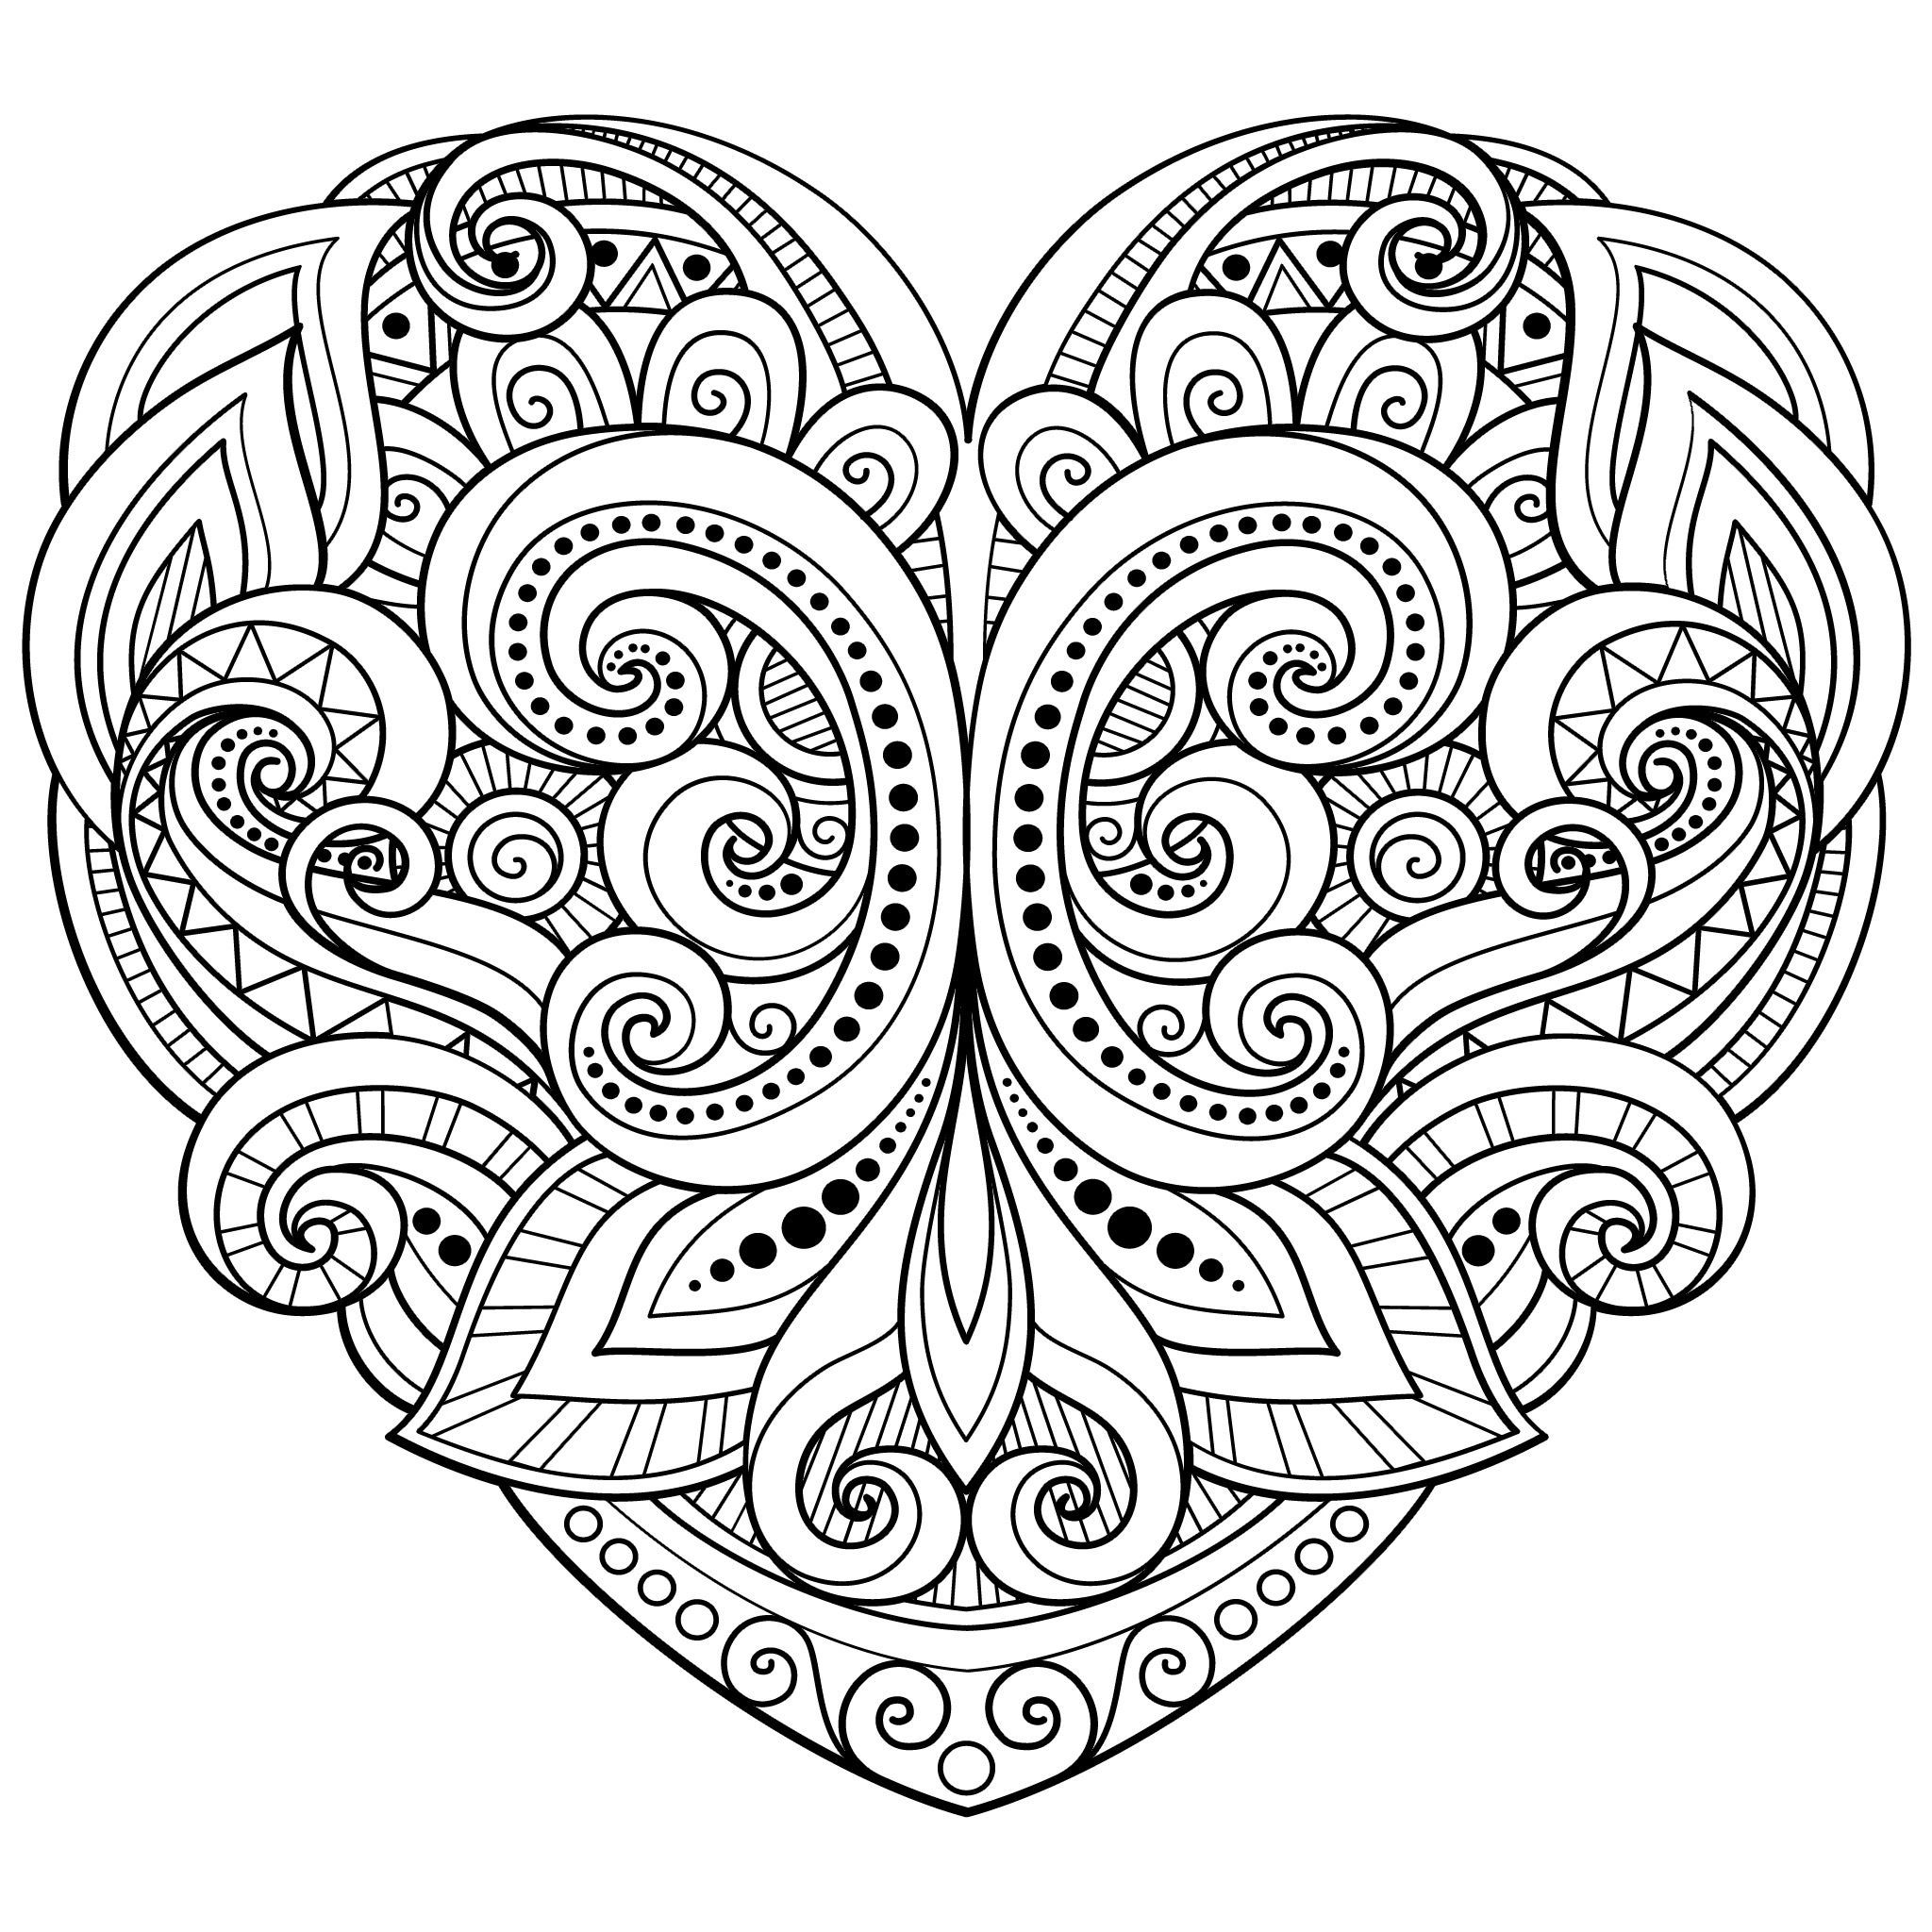 Heart Coloring Pages For Adults Heart Coloring Pages